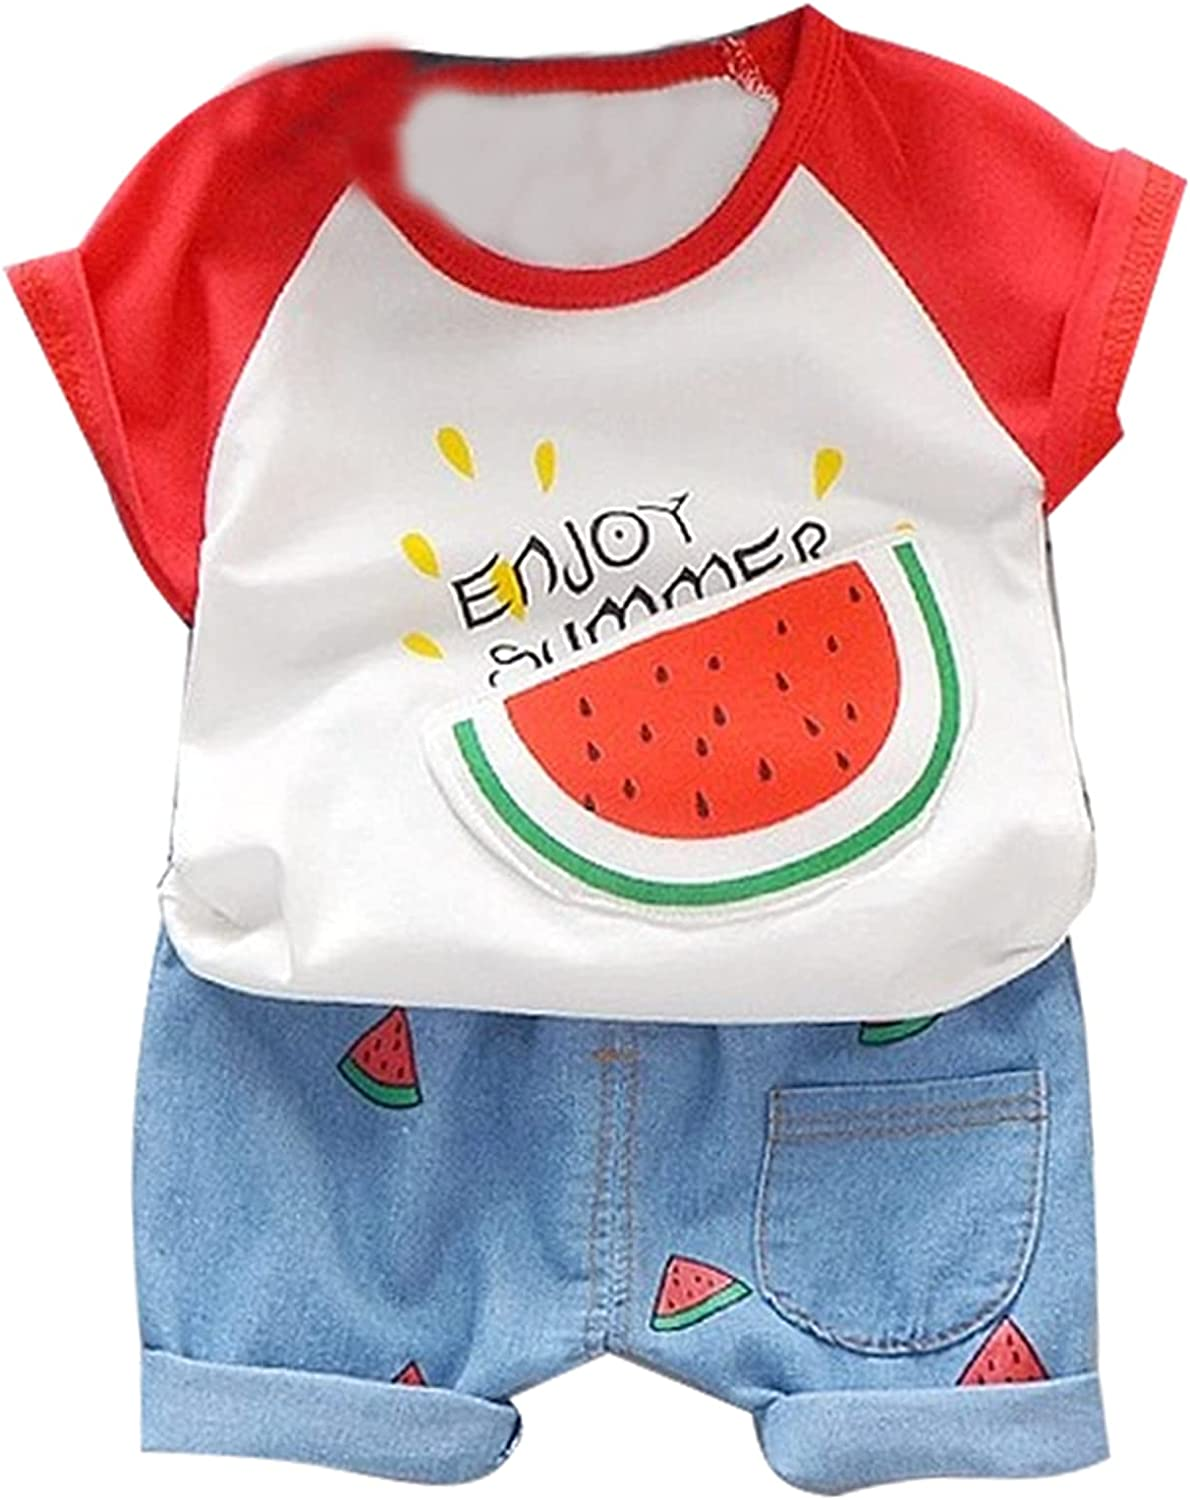 NC Children's Summer Short-Sleeved Cotton T-Shirt Suit, Super Soft, Comfortable, Breathable and Durable, Solid Color Round Neck, V Neck, Easy to Carry